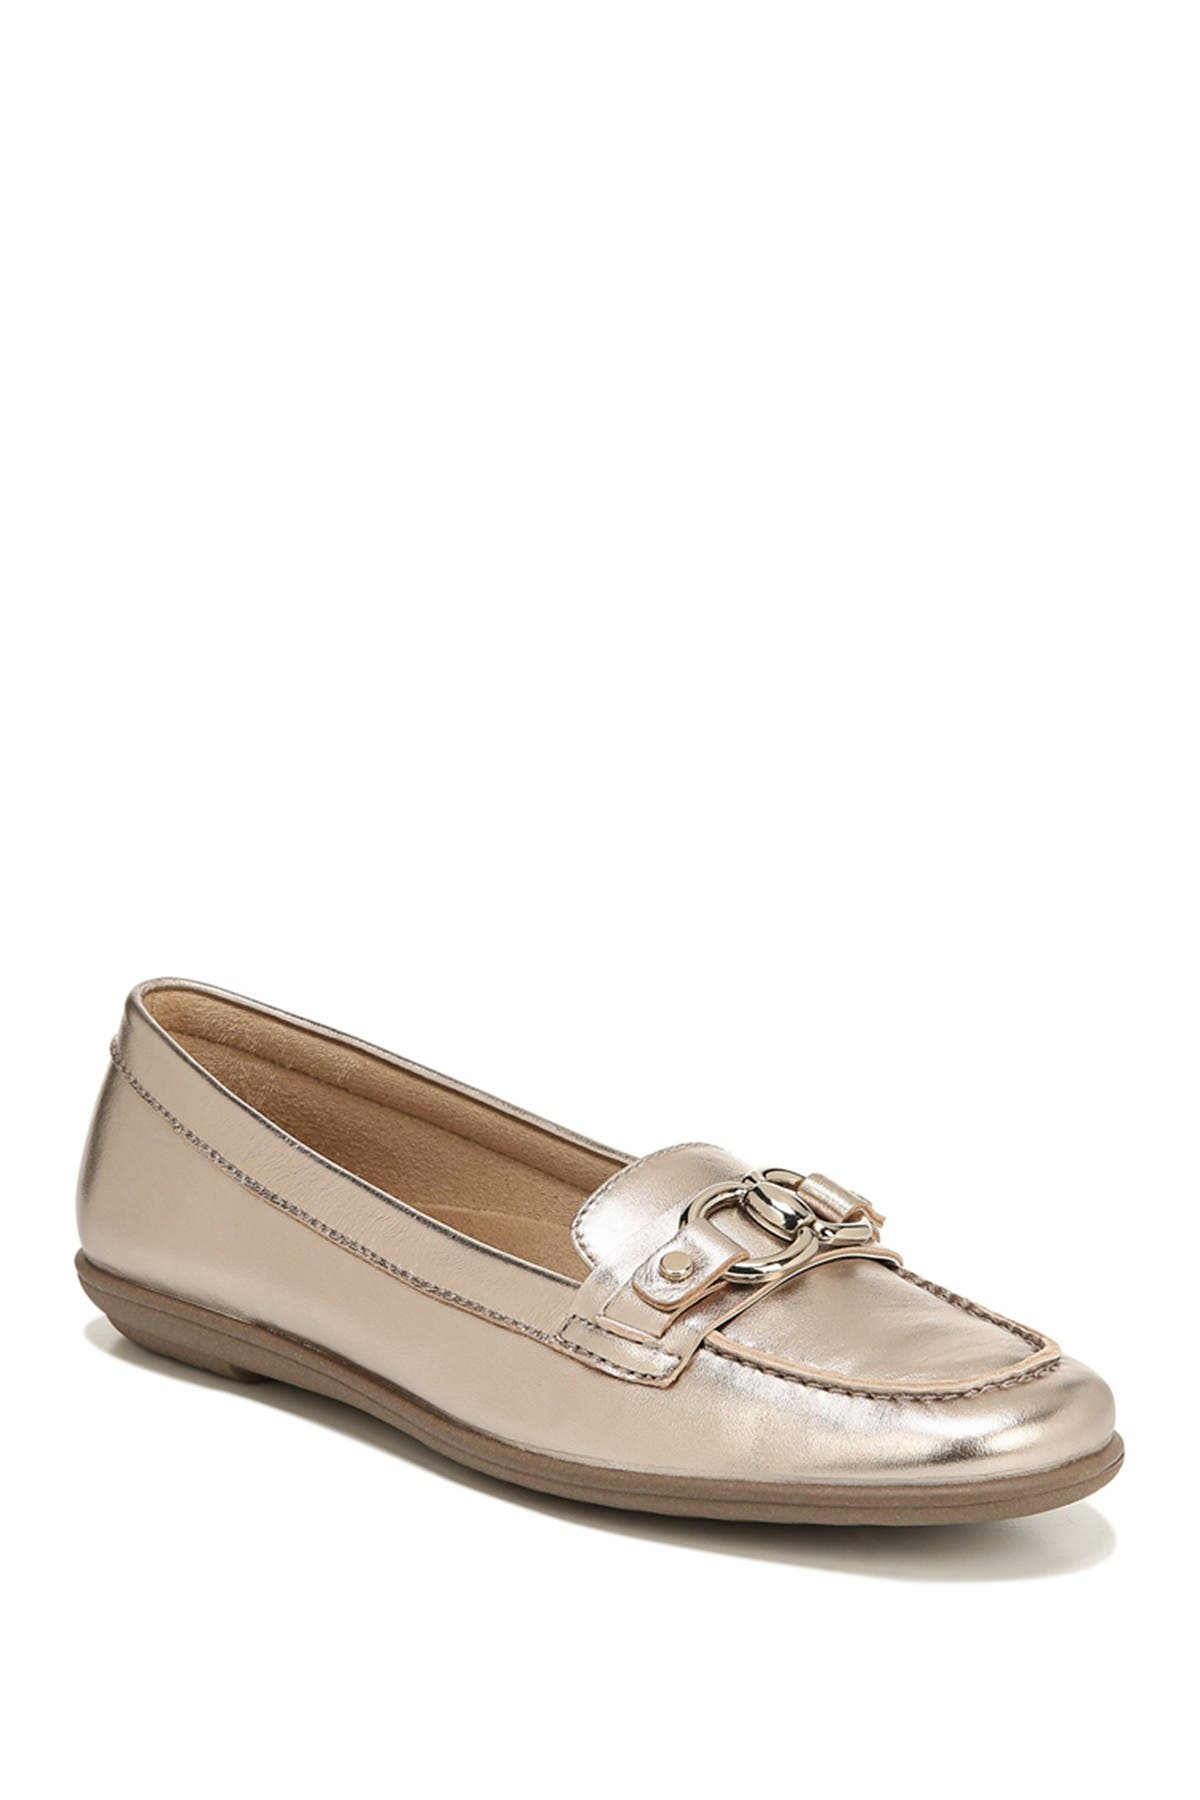 Naturalizer | Ainsley Metallic Loafer